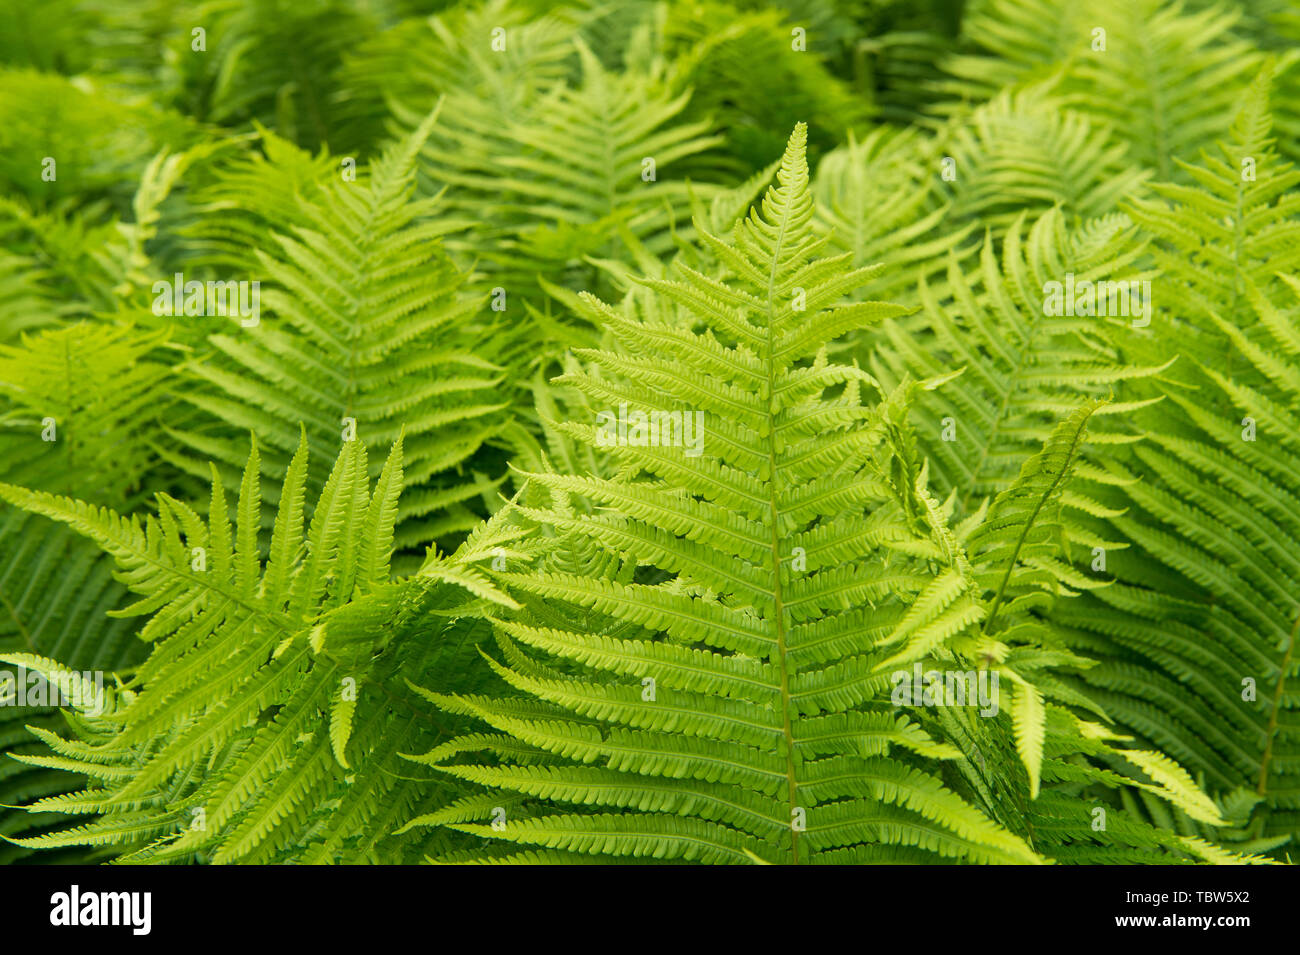 Beautiful ferns leaves green foliage nature. Floral fern background. Ferns leaves green foliage. Tropical leaf. Exotic forest plant. Botany concept. Ferns jungles. Vibrant ferns close up. - Stock Image